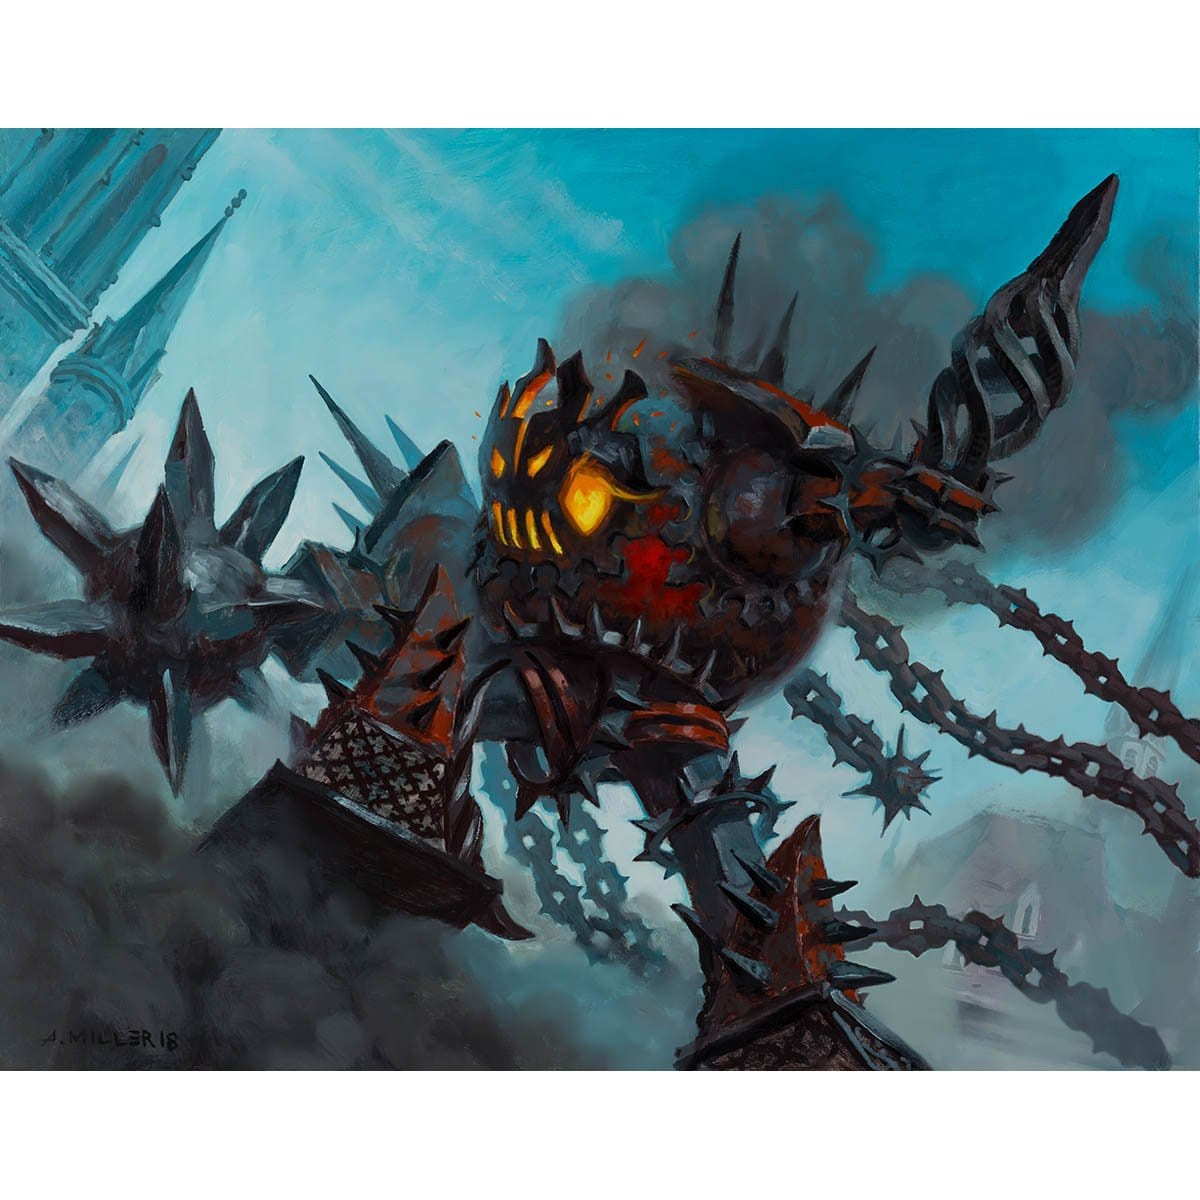 Iron Bully Print - Print - Original Magic Art - Accessories for Magic the Gathering and other card games